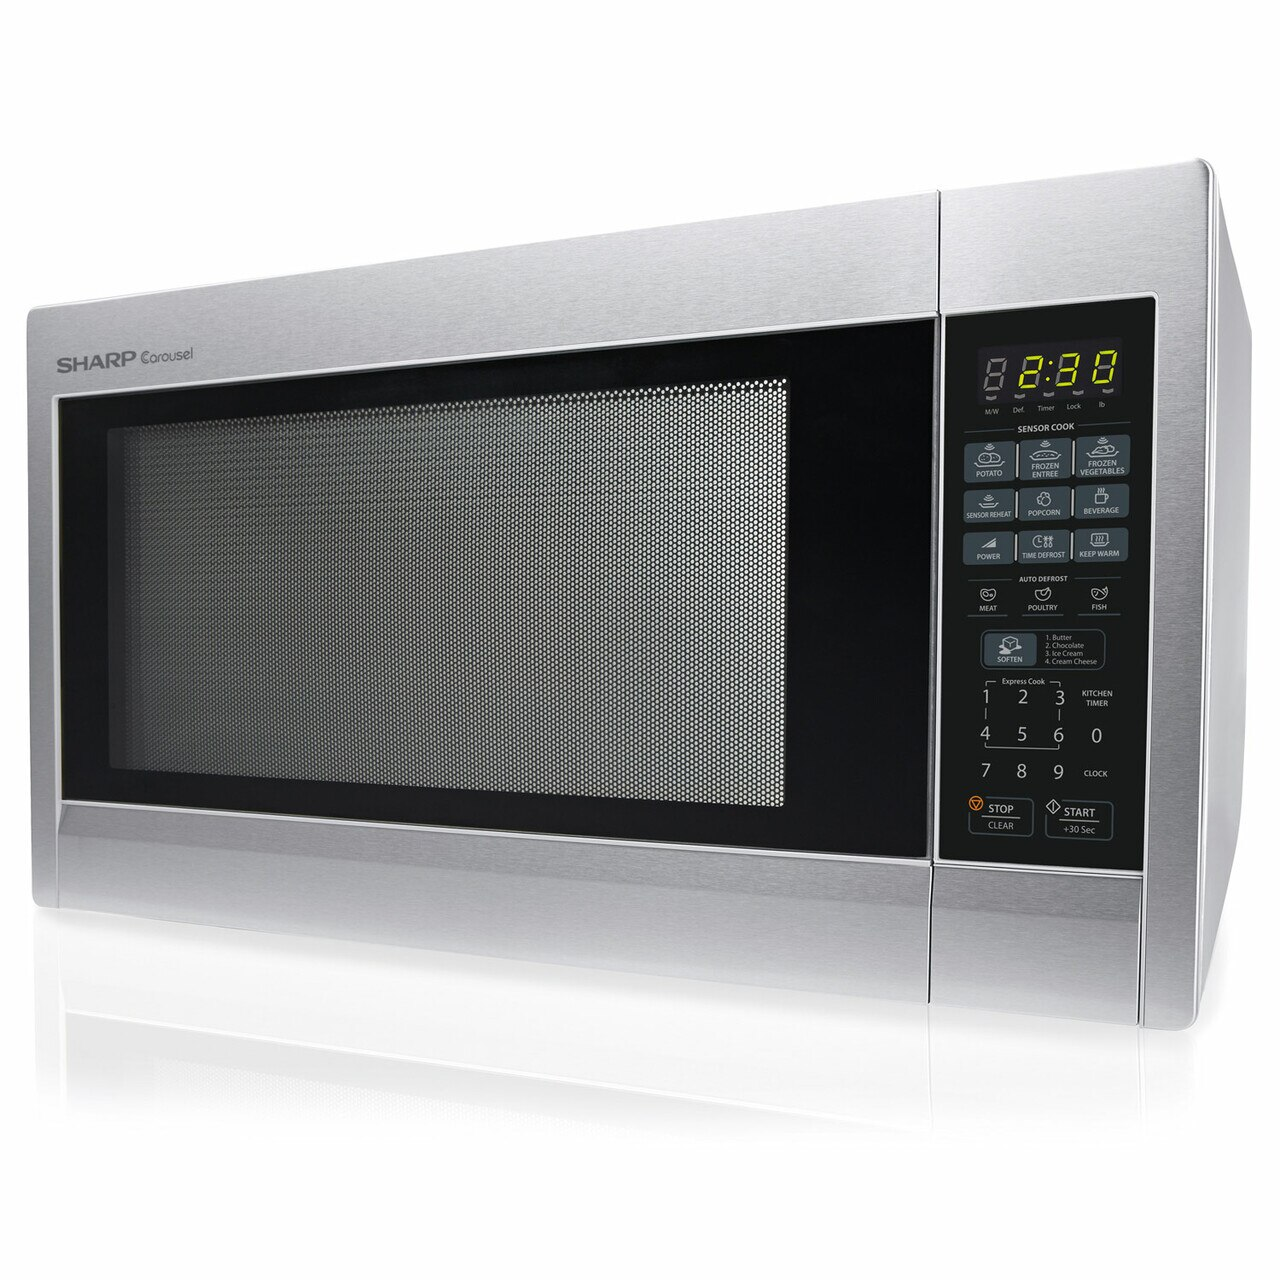 2.2 cu. ft. Stainless Steel Countertop Microwave (R651ZS) – left side view